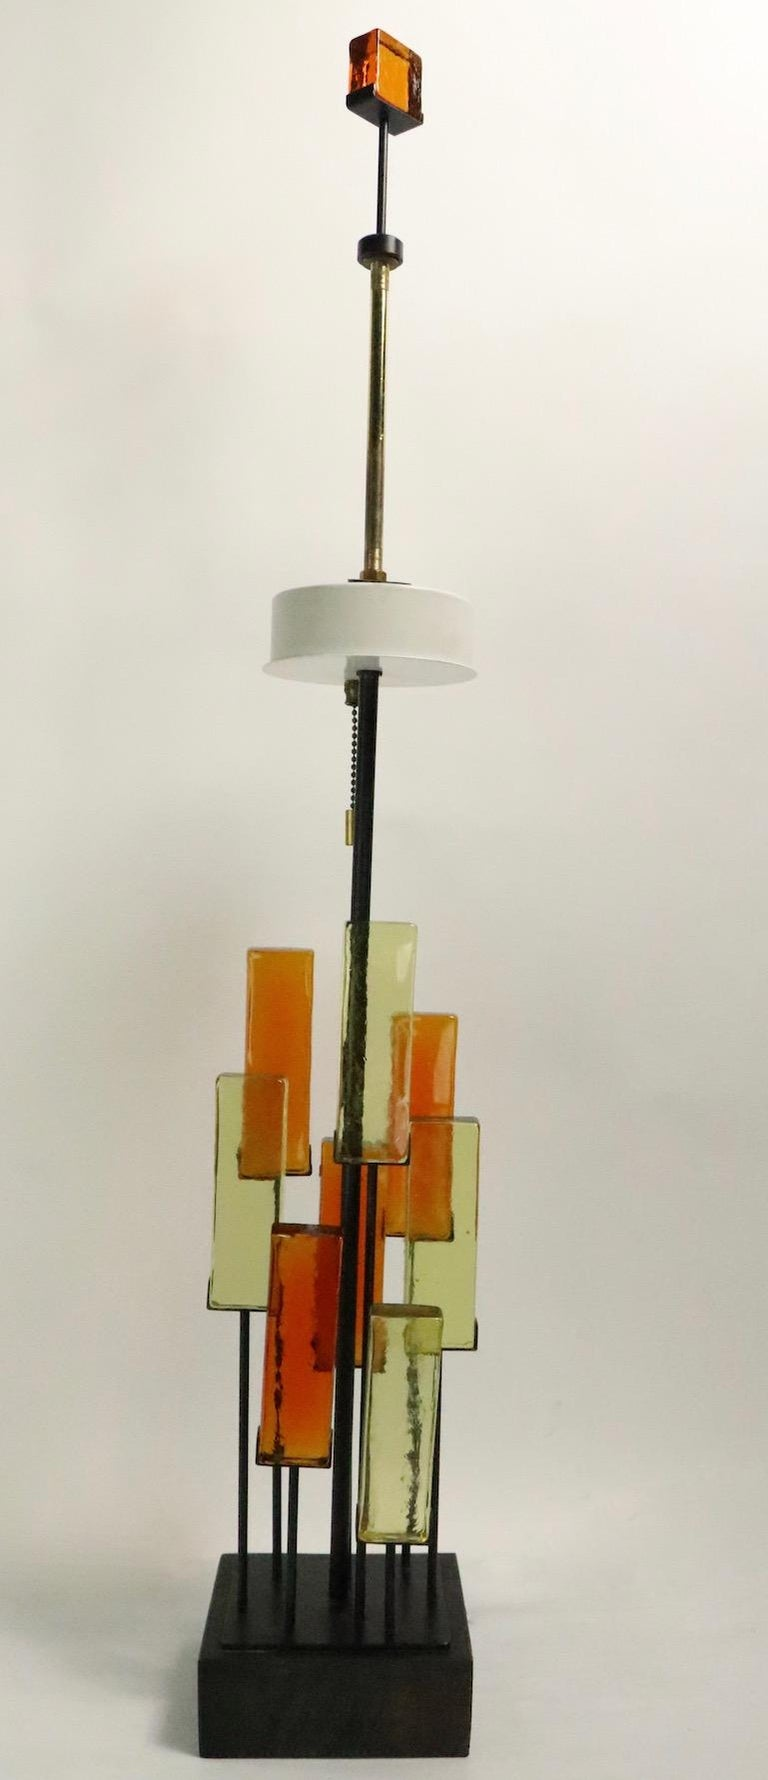 Rare glass block and wrought iron table lamp, design attributed to Gerald Thurston, for Lightolier. This example is in excellent original condition, clean, working and ready to use, it accepts three standard size screw in bulbs, which operate